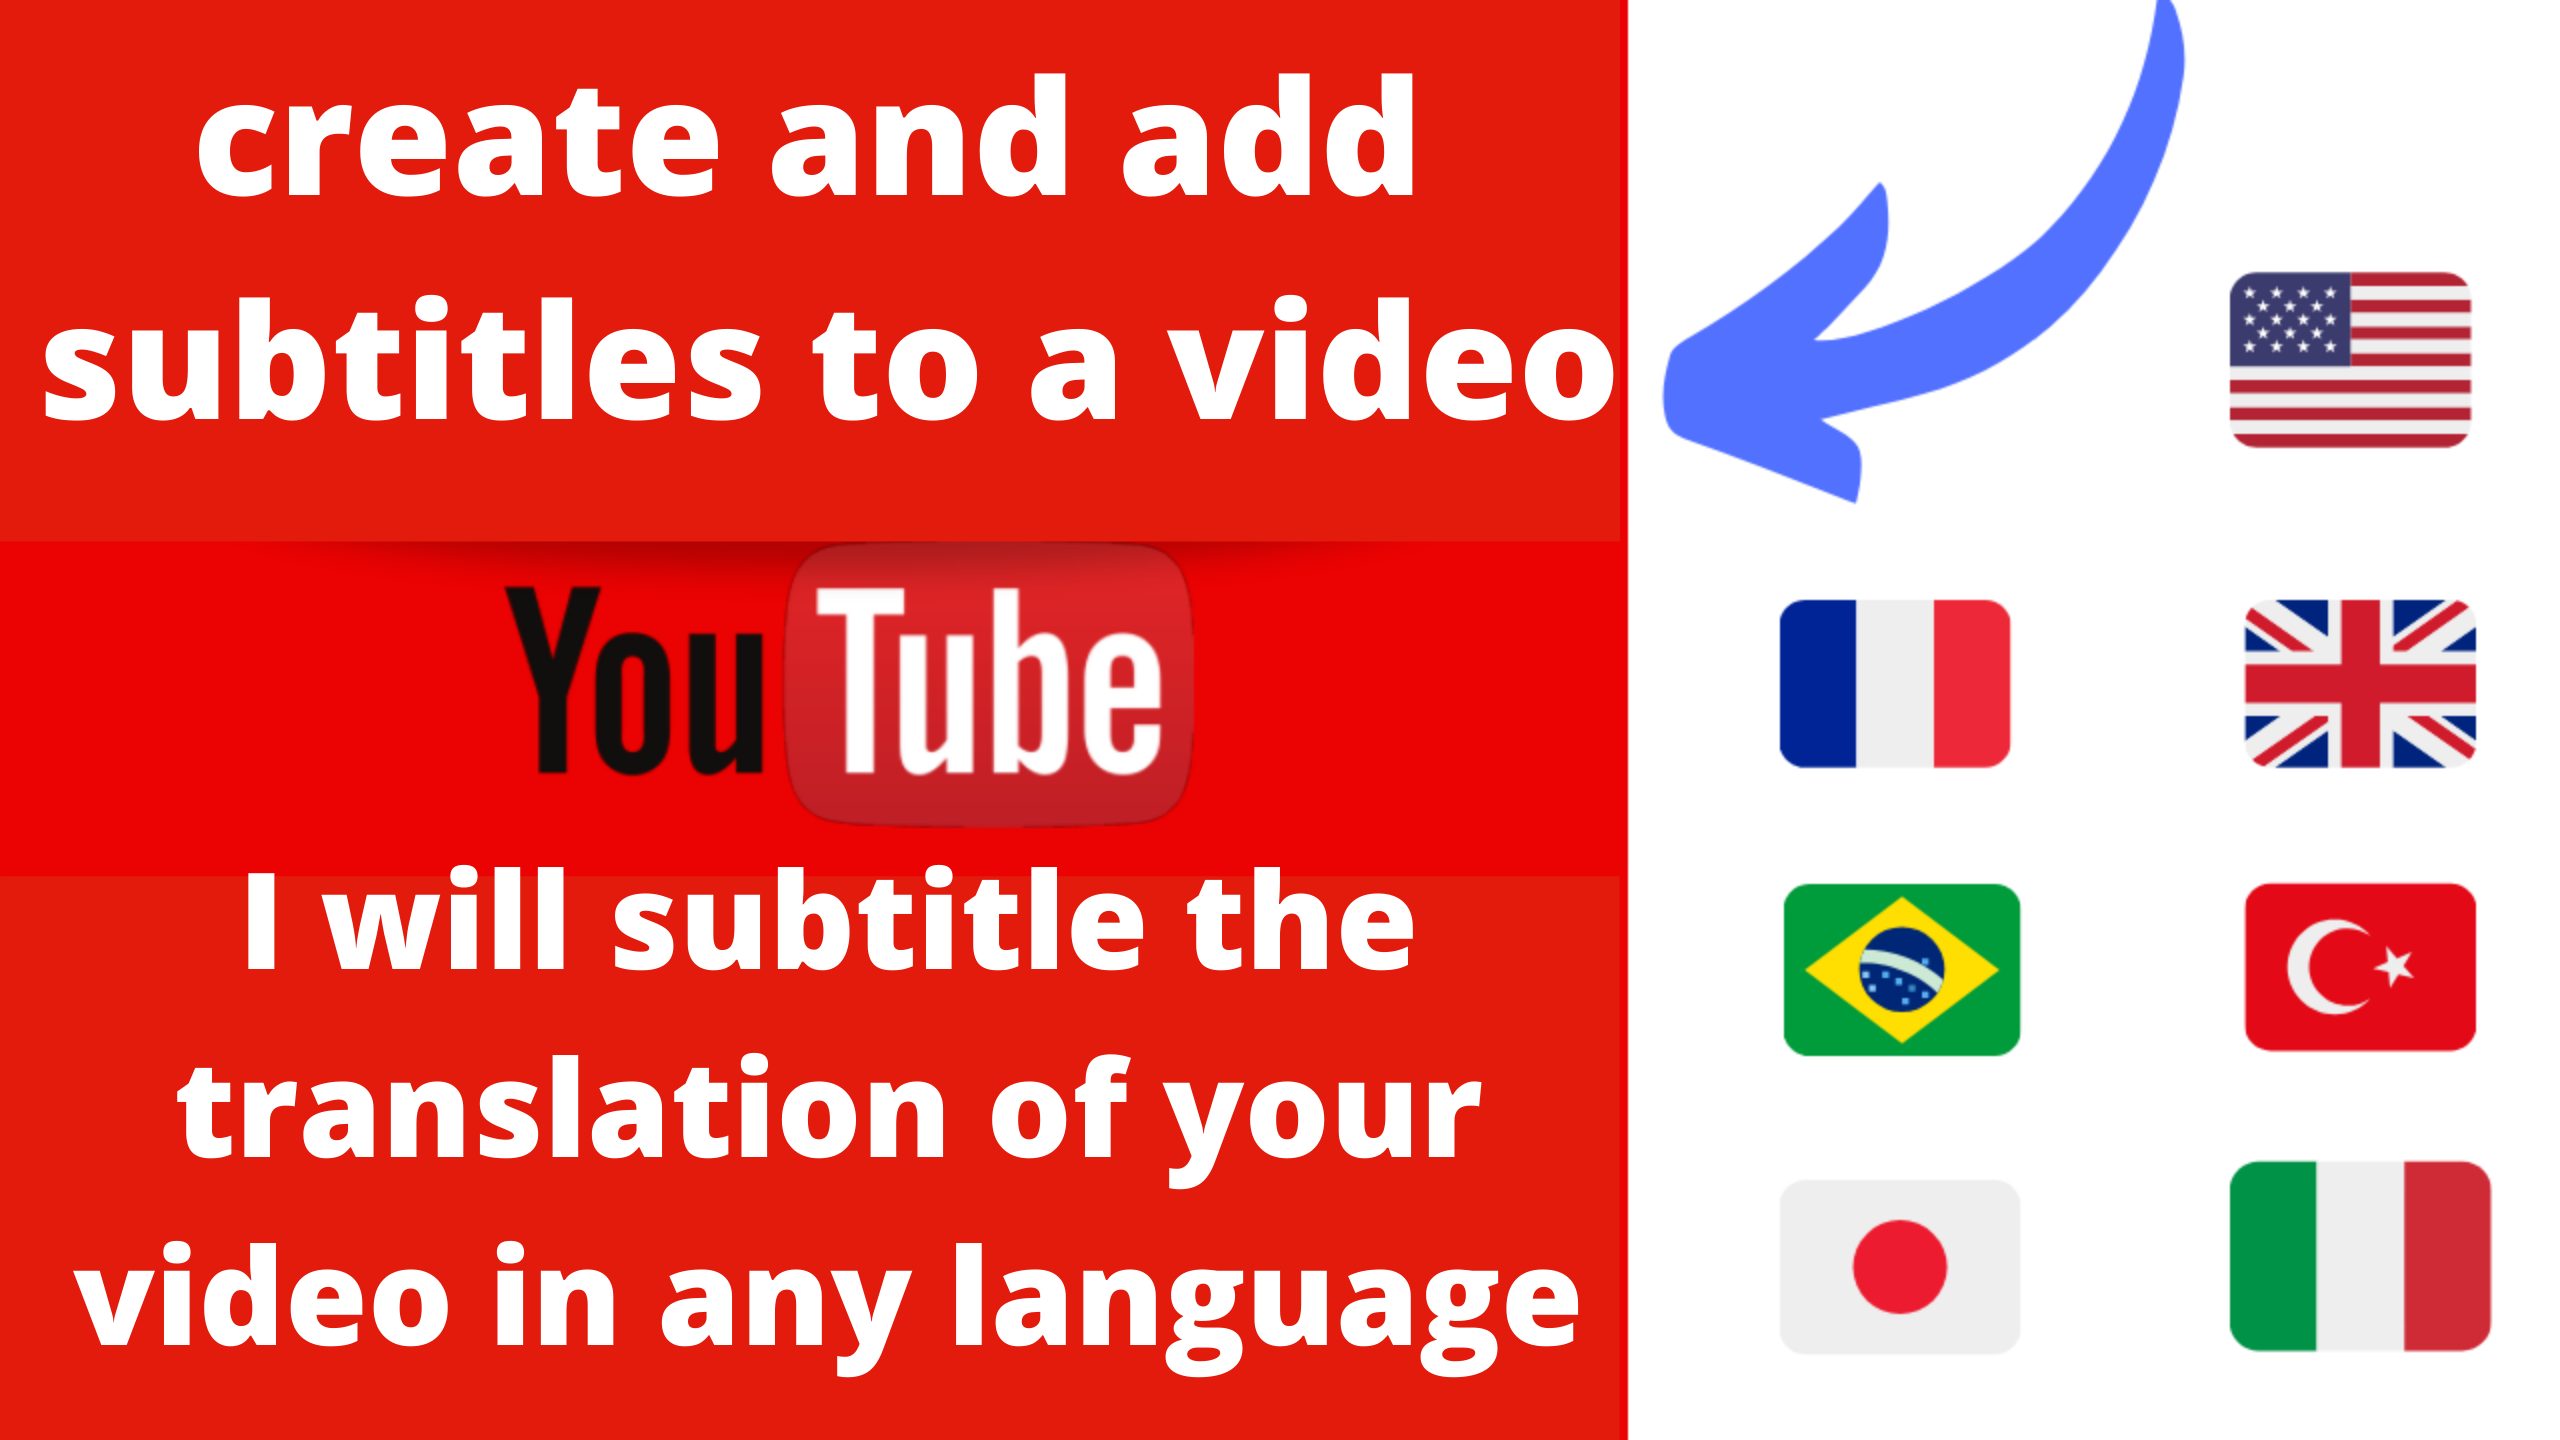 I will translate video subtitles to any languages and make subtitles added videos up to 5 minutes in